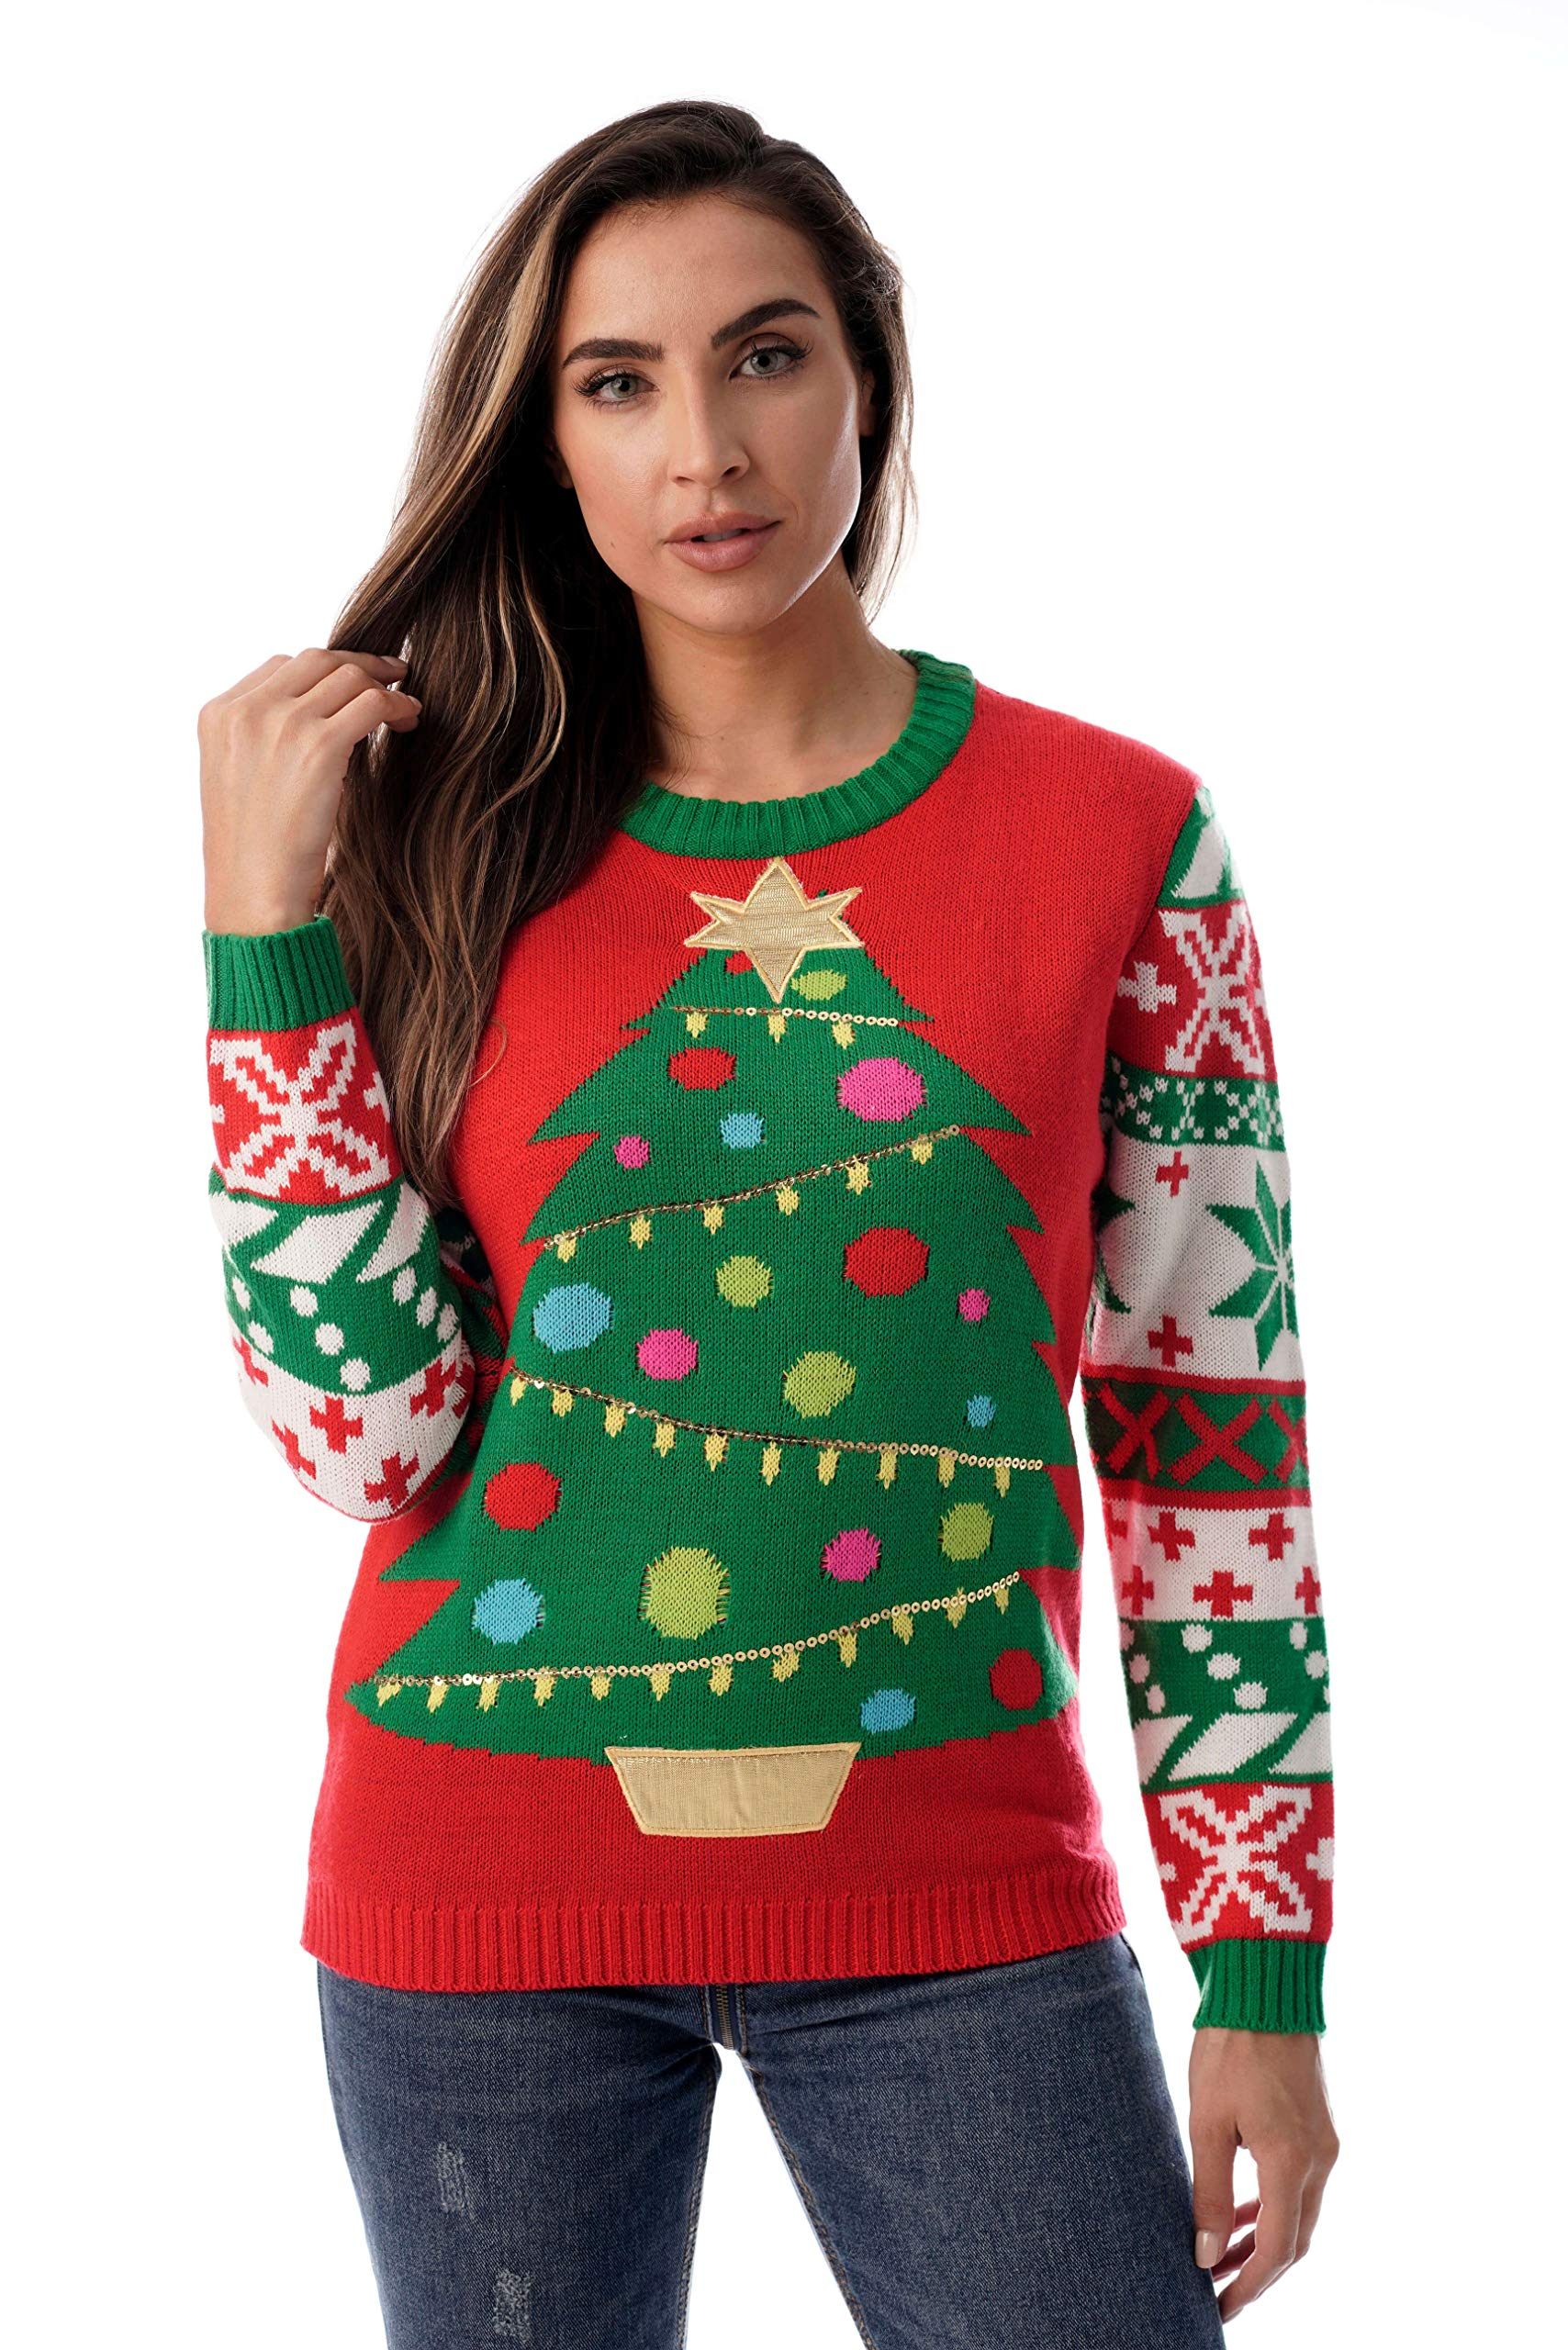 The Office Christmas Sweater.Followme Womens Ugly Christmas Sweater Sweaters For Women